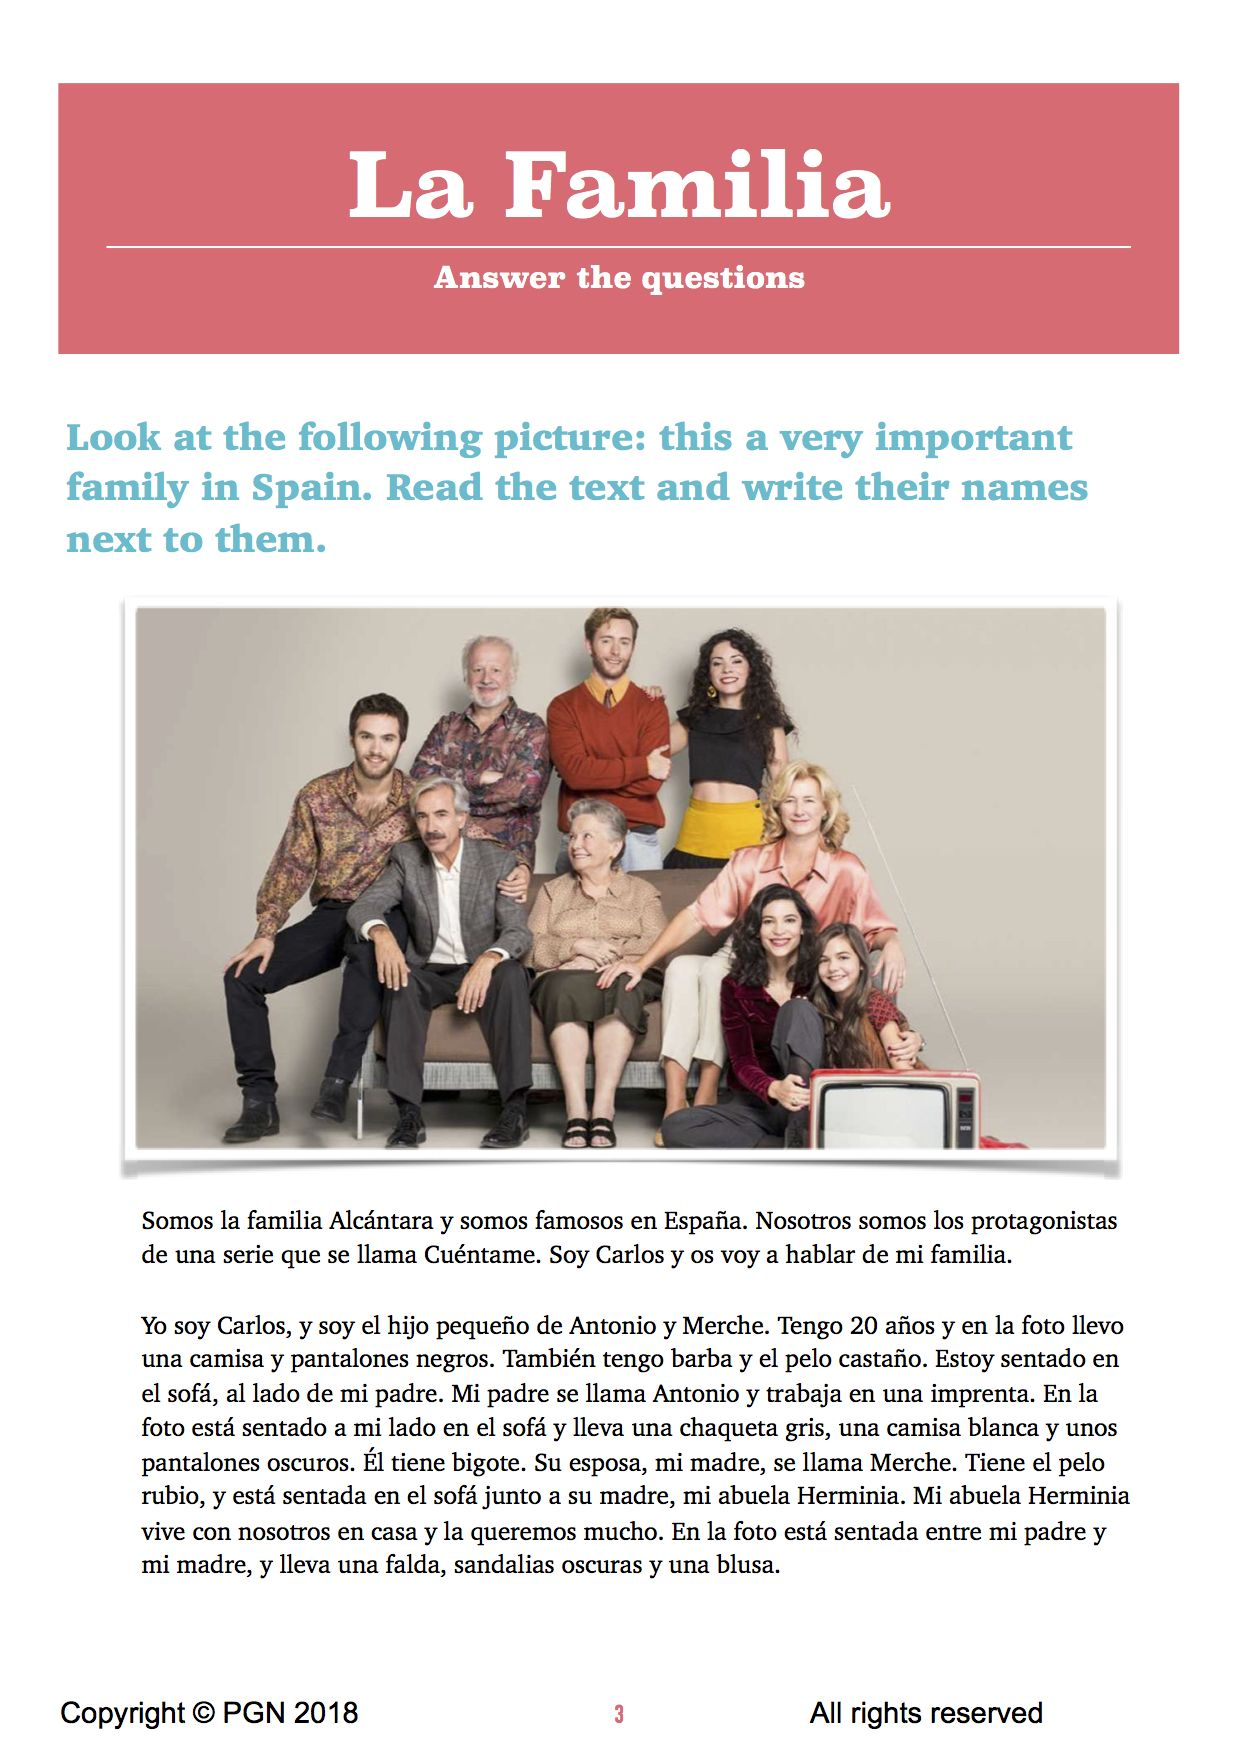 La Familia Family In Spanish Class Is A Resource Full